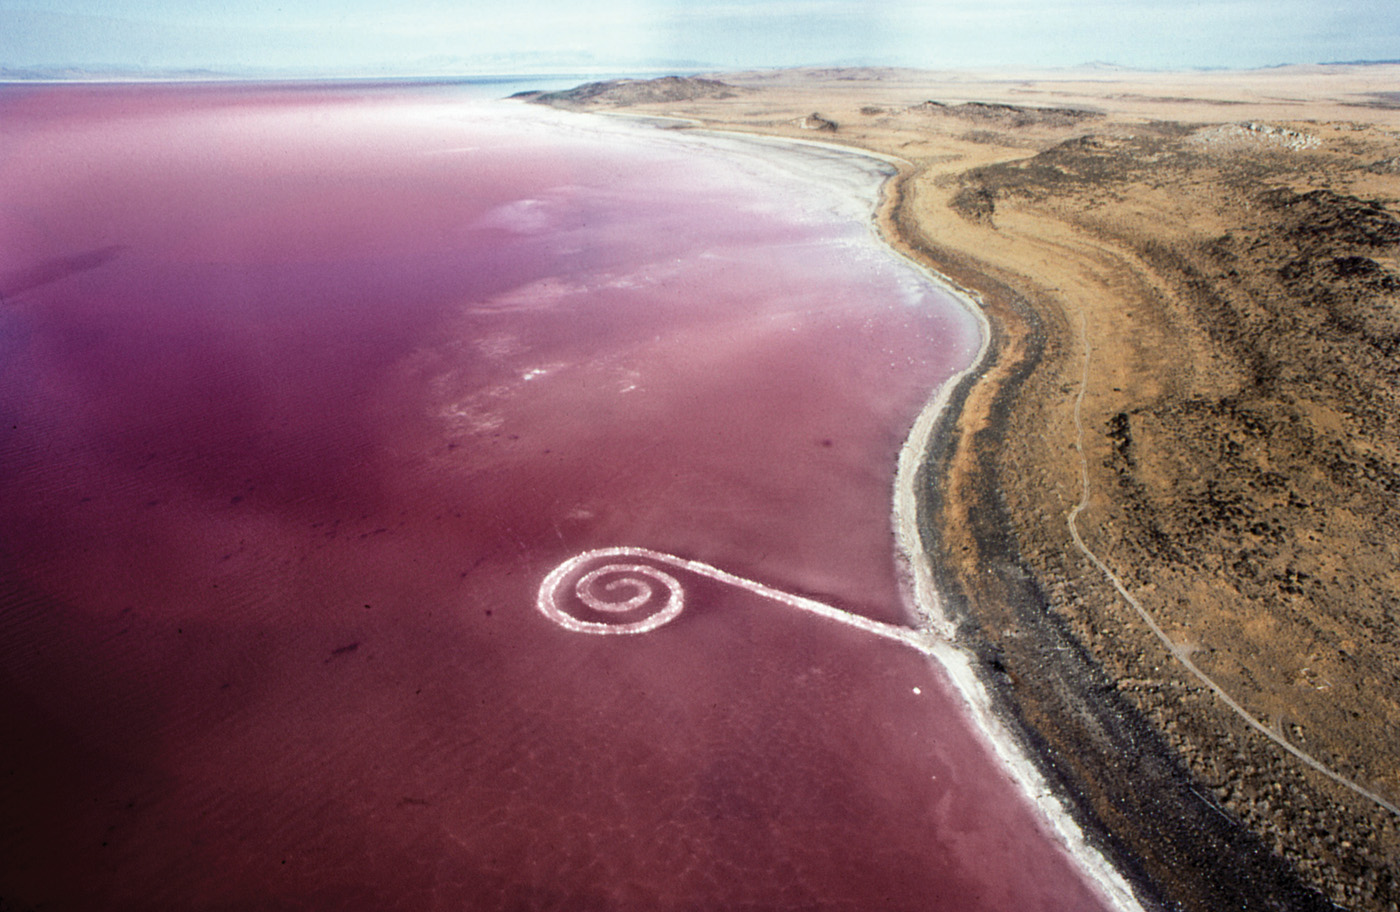 Robert Smithson, Spiral Jetty, 1970. Copyright Holt/Smithson Foundation and Dia Art Foundation/Licensed by VAGA at Artists Rights Society (ARS), NY.